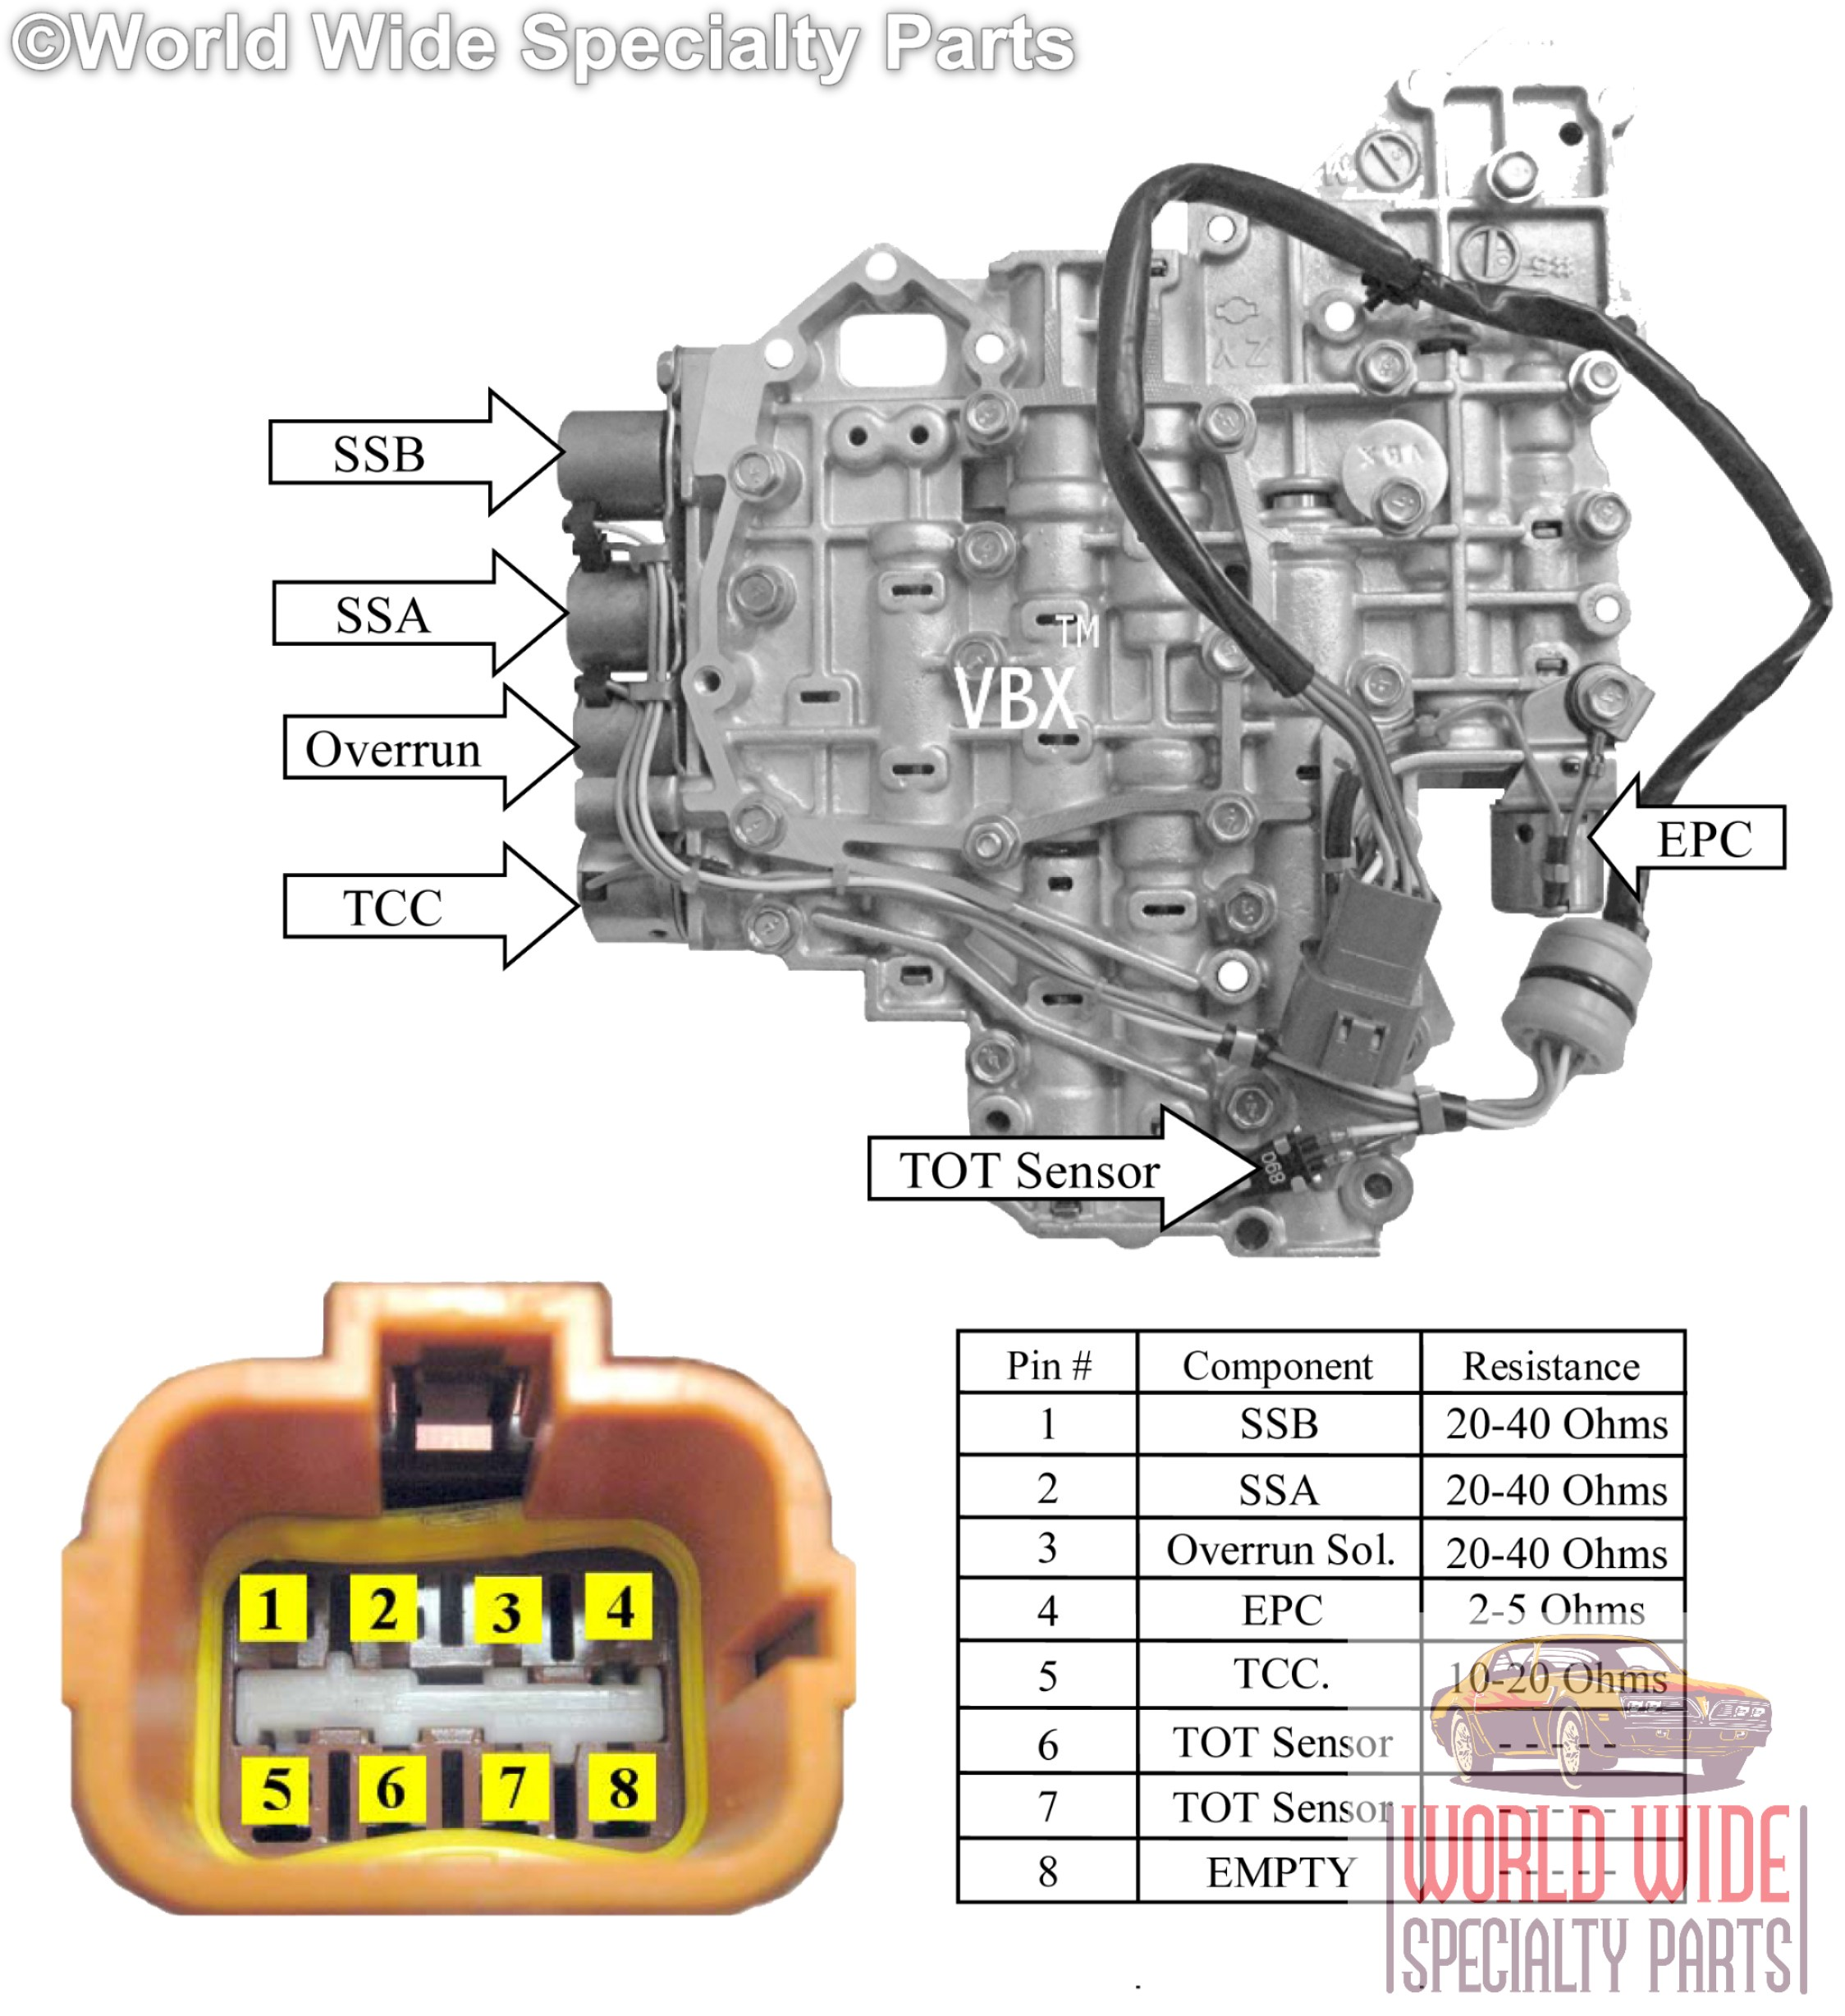 nissan maxima transmission wiring nissan auto wiring diagram 2000 maxima transmission wiring harness rigid industries switch on nissan maxima transmission wiring